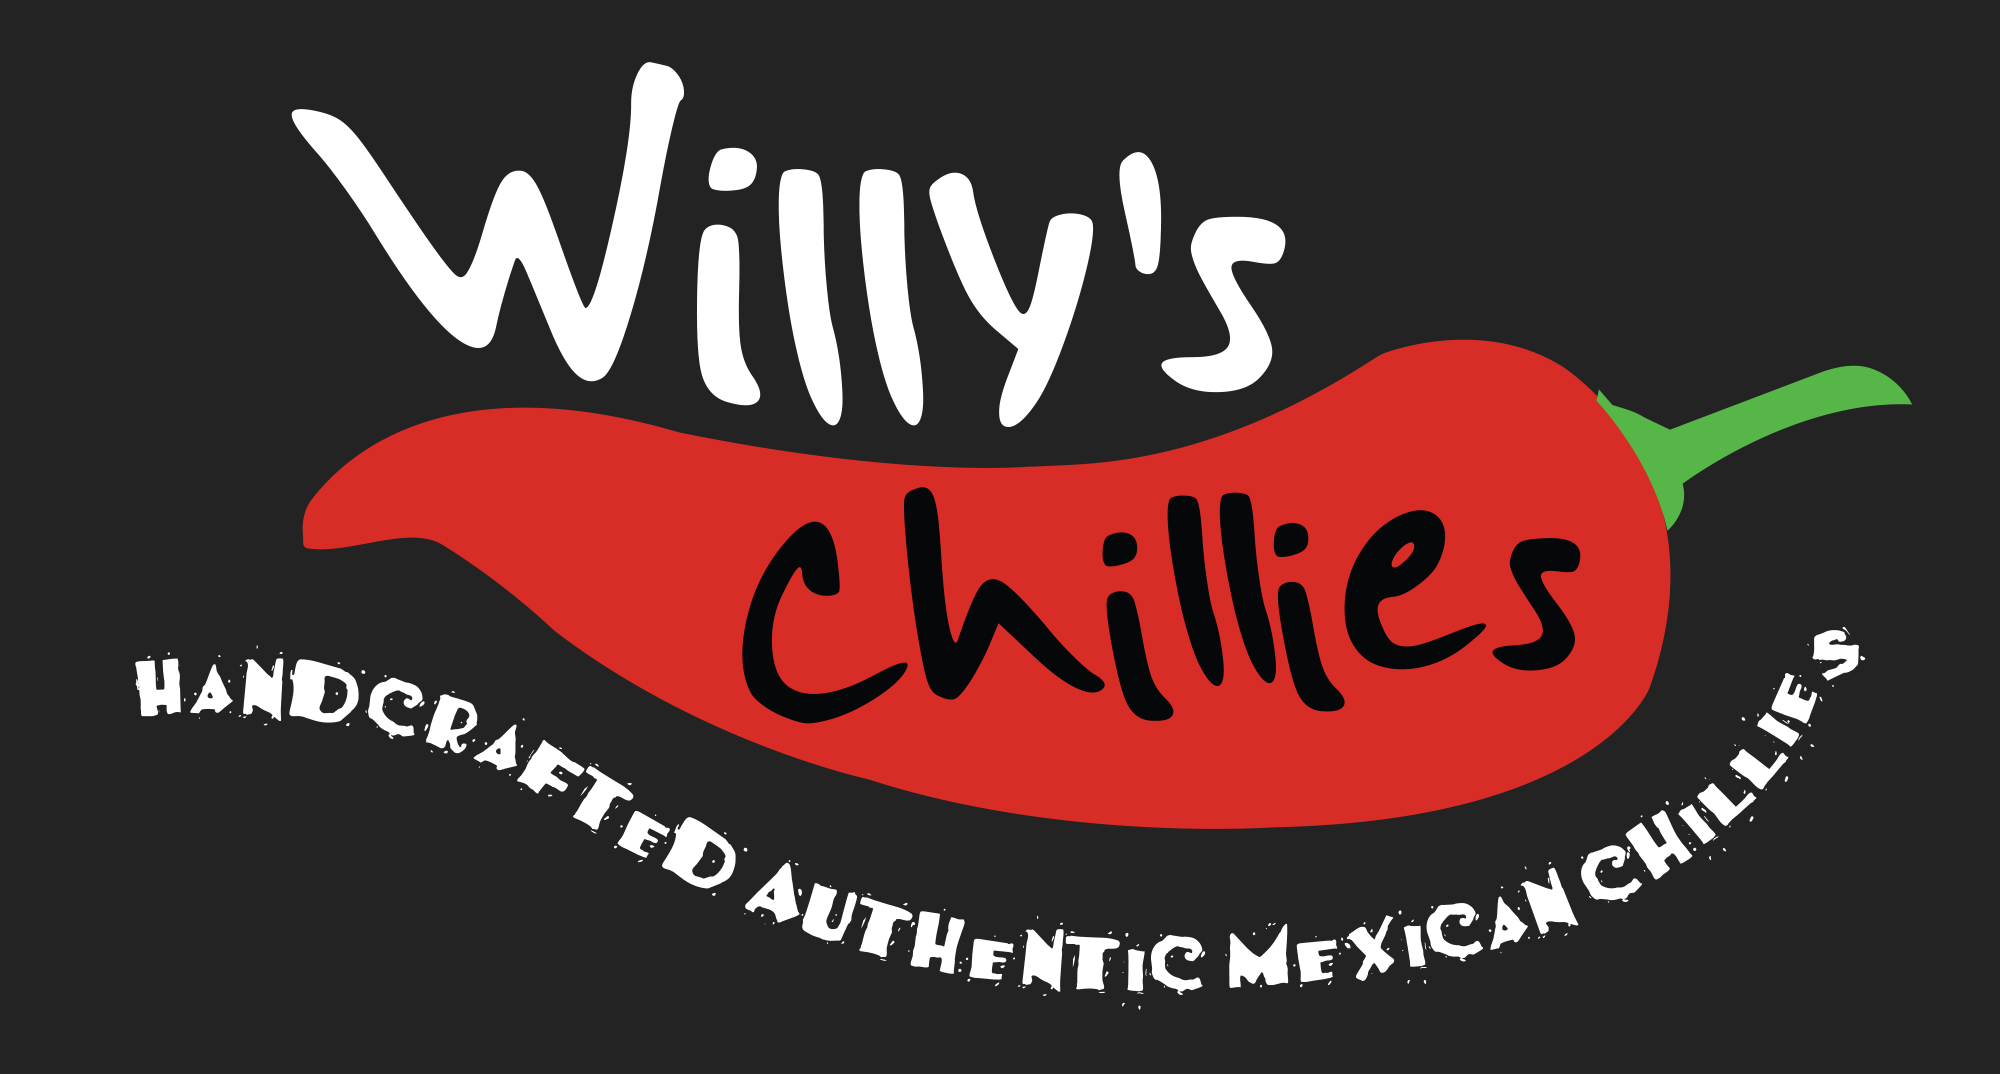 Willy's Chillies